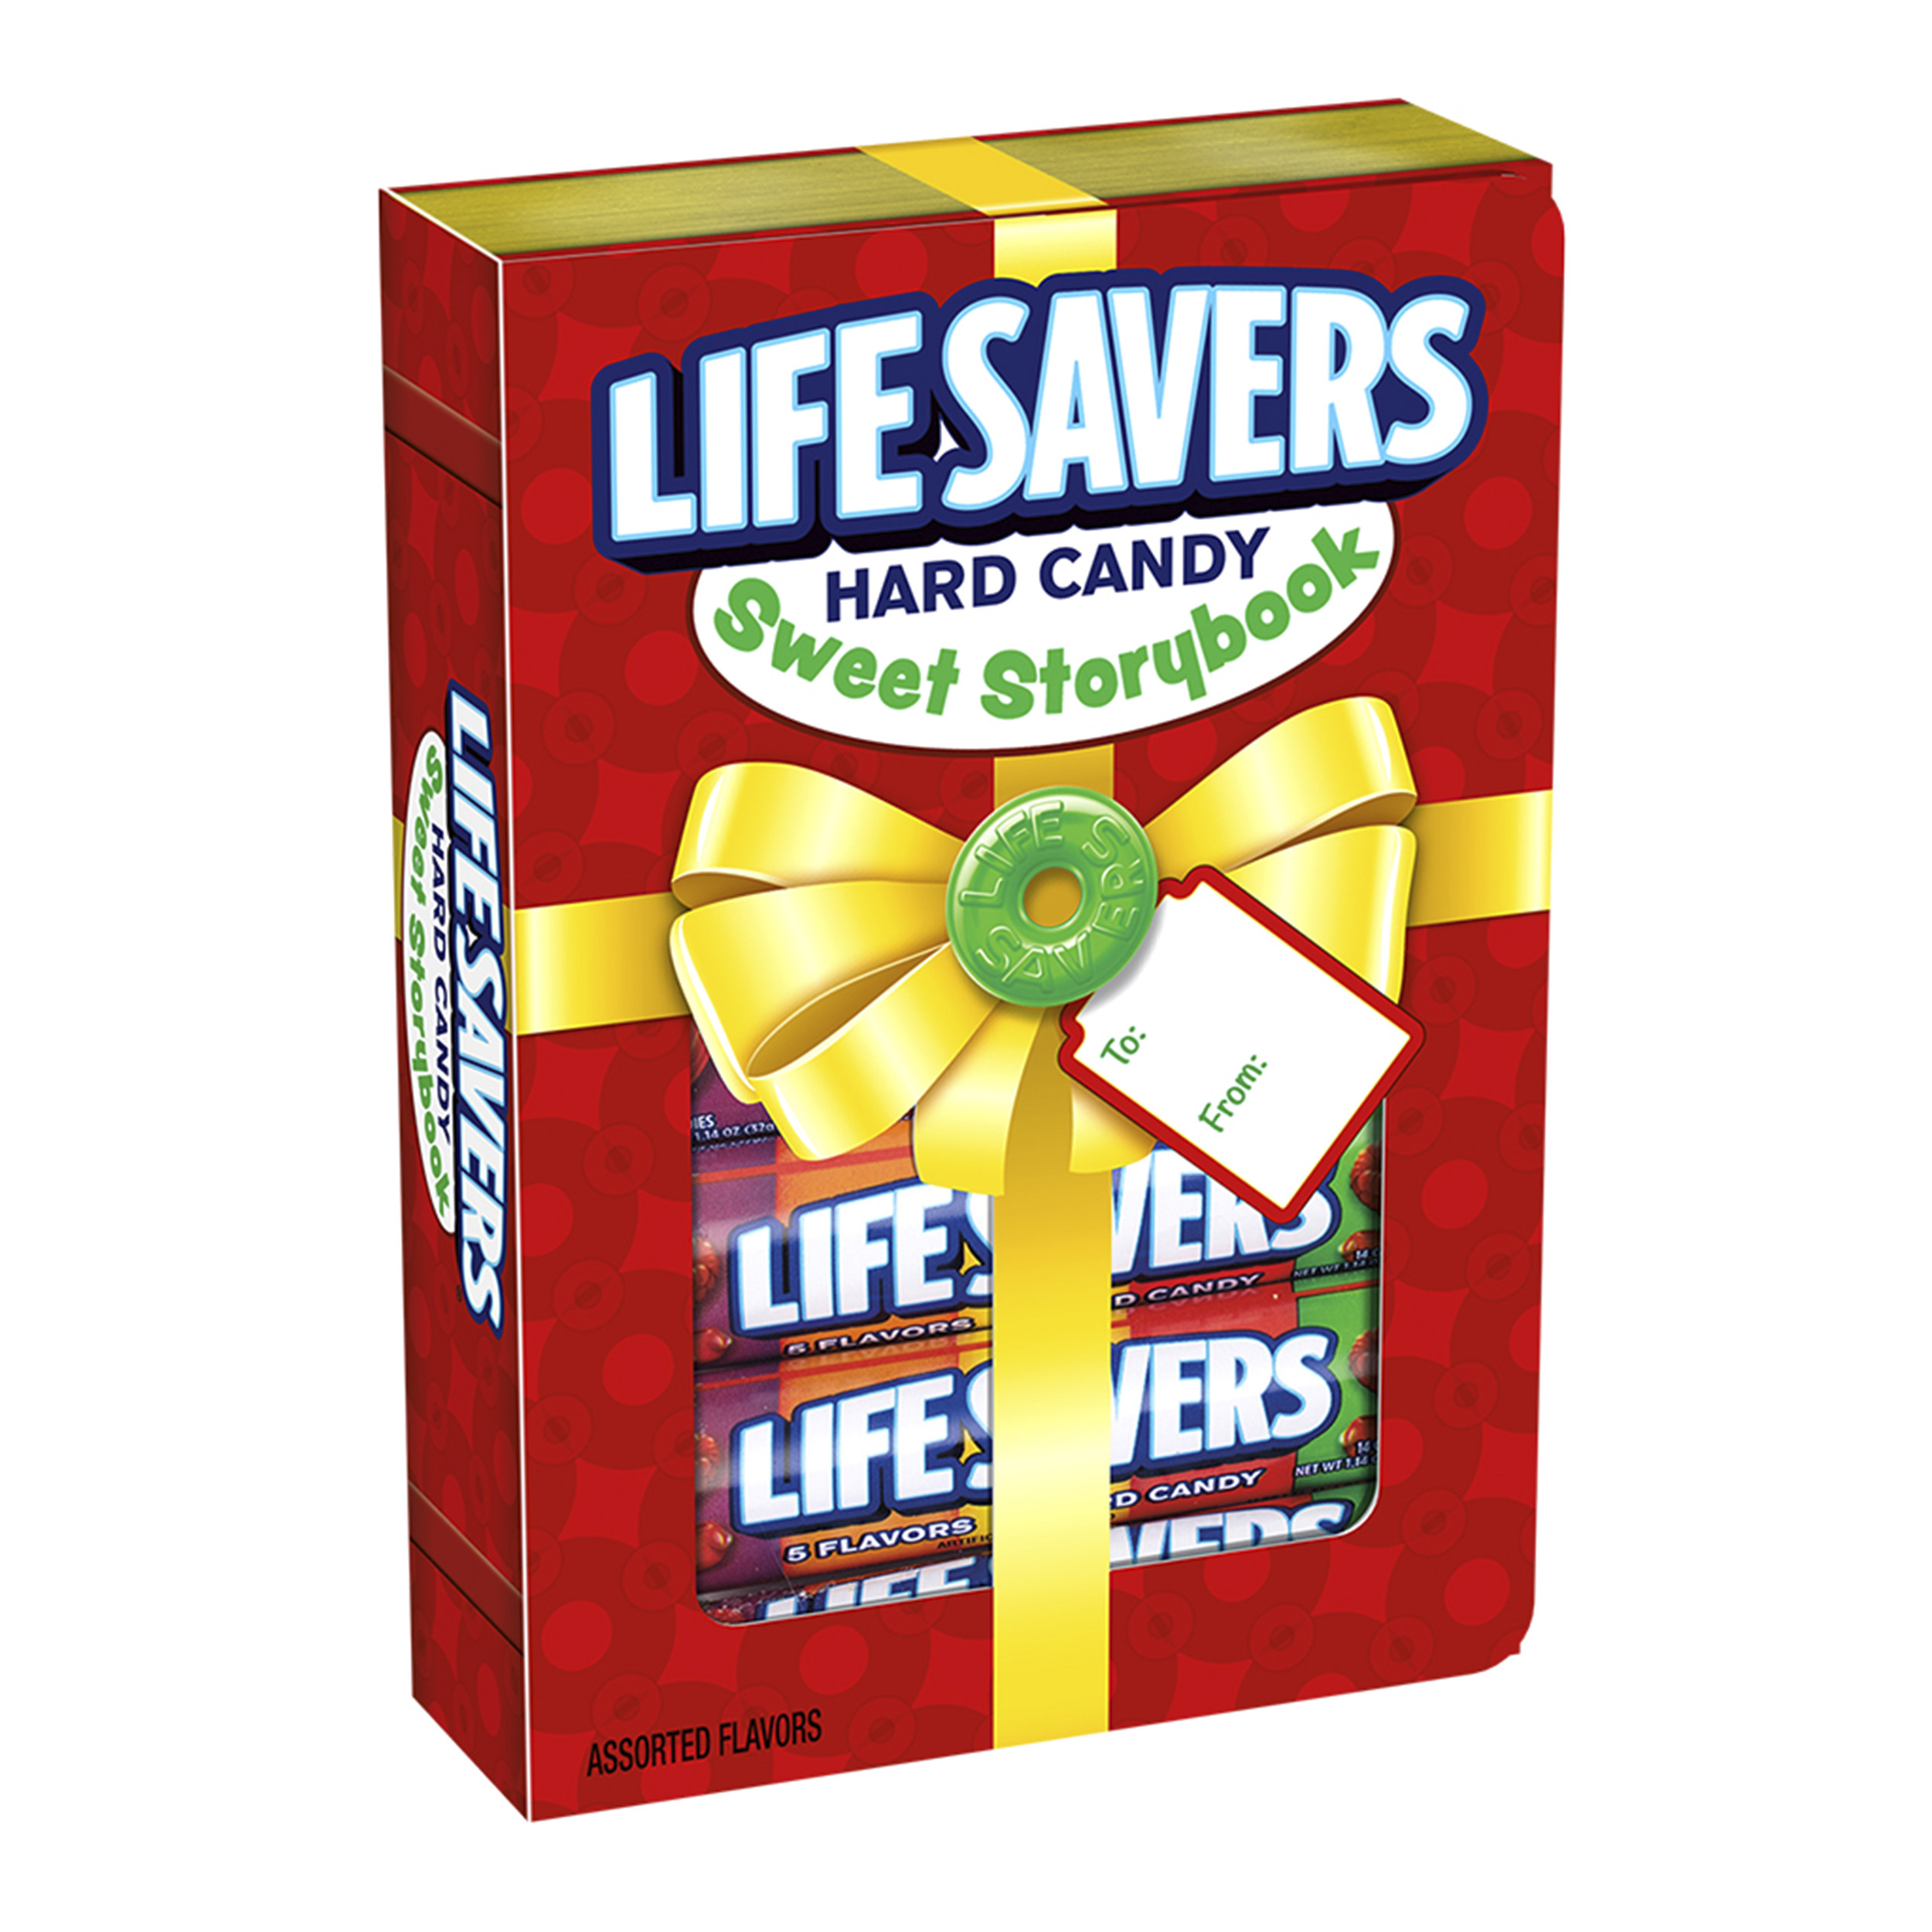 Life Savers 5 Flavors Sweet Storybook Gift Box (6 Rolls of Candies)